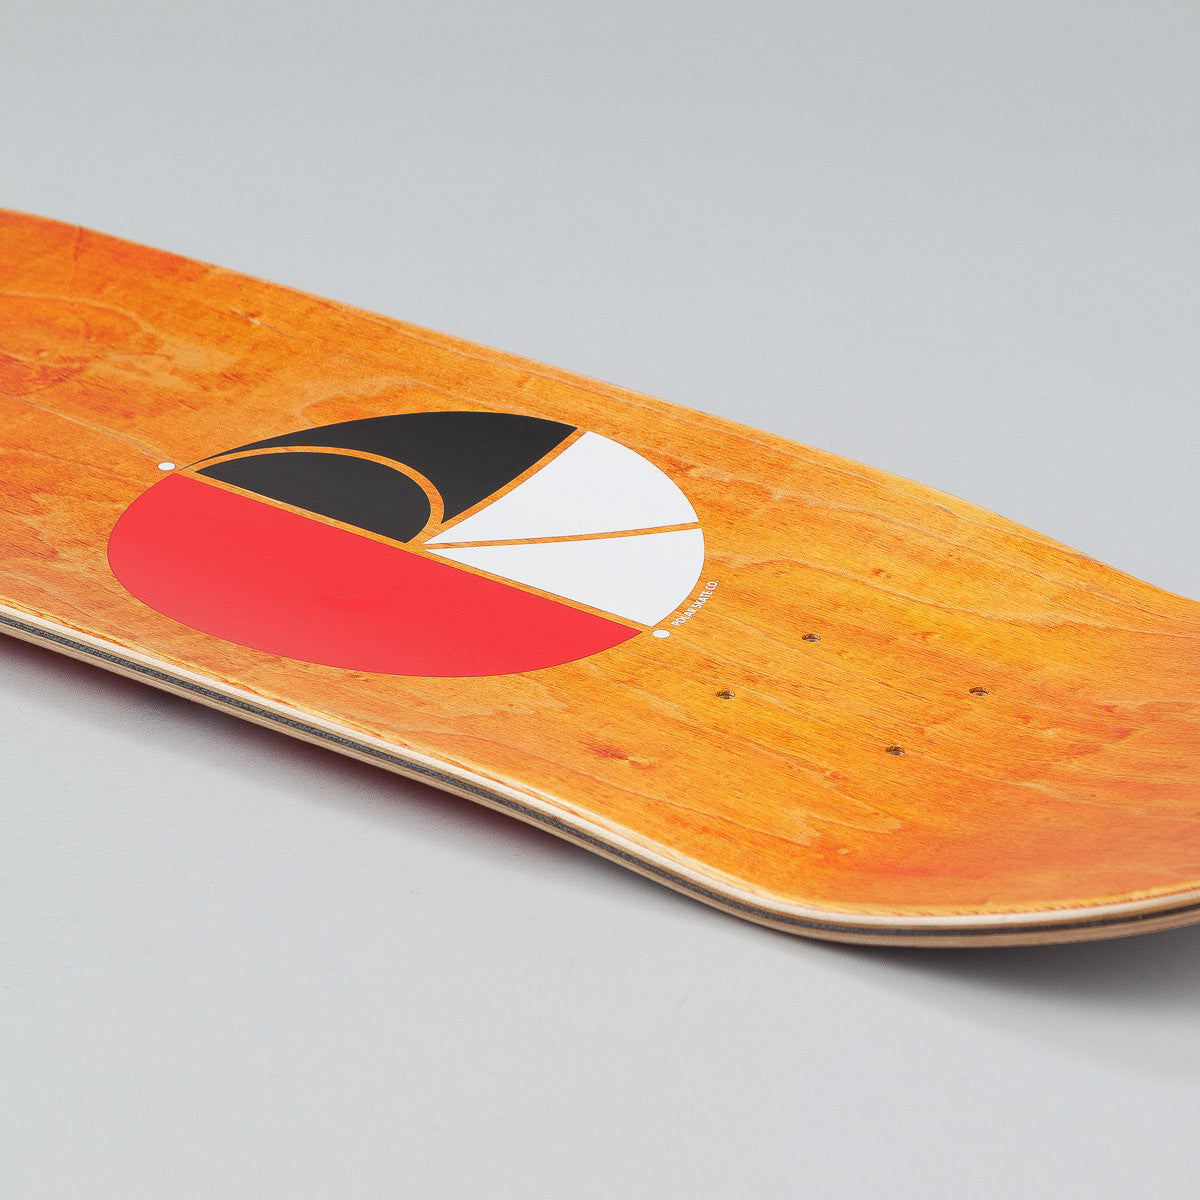 Polar PA Wallride Nollie Deck - P2 White / Red